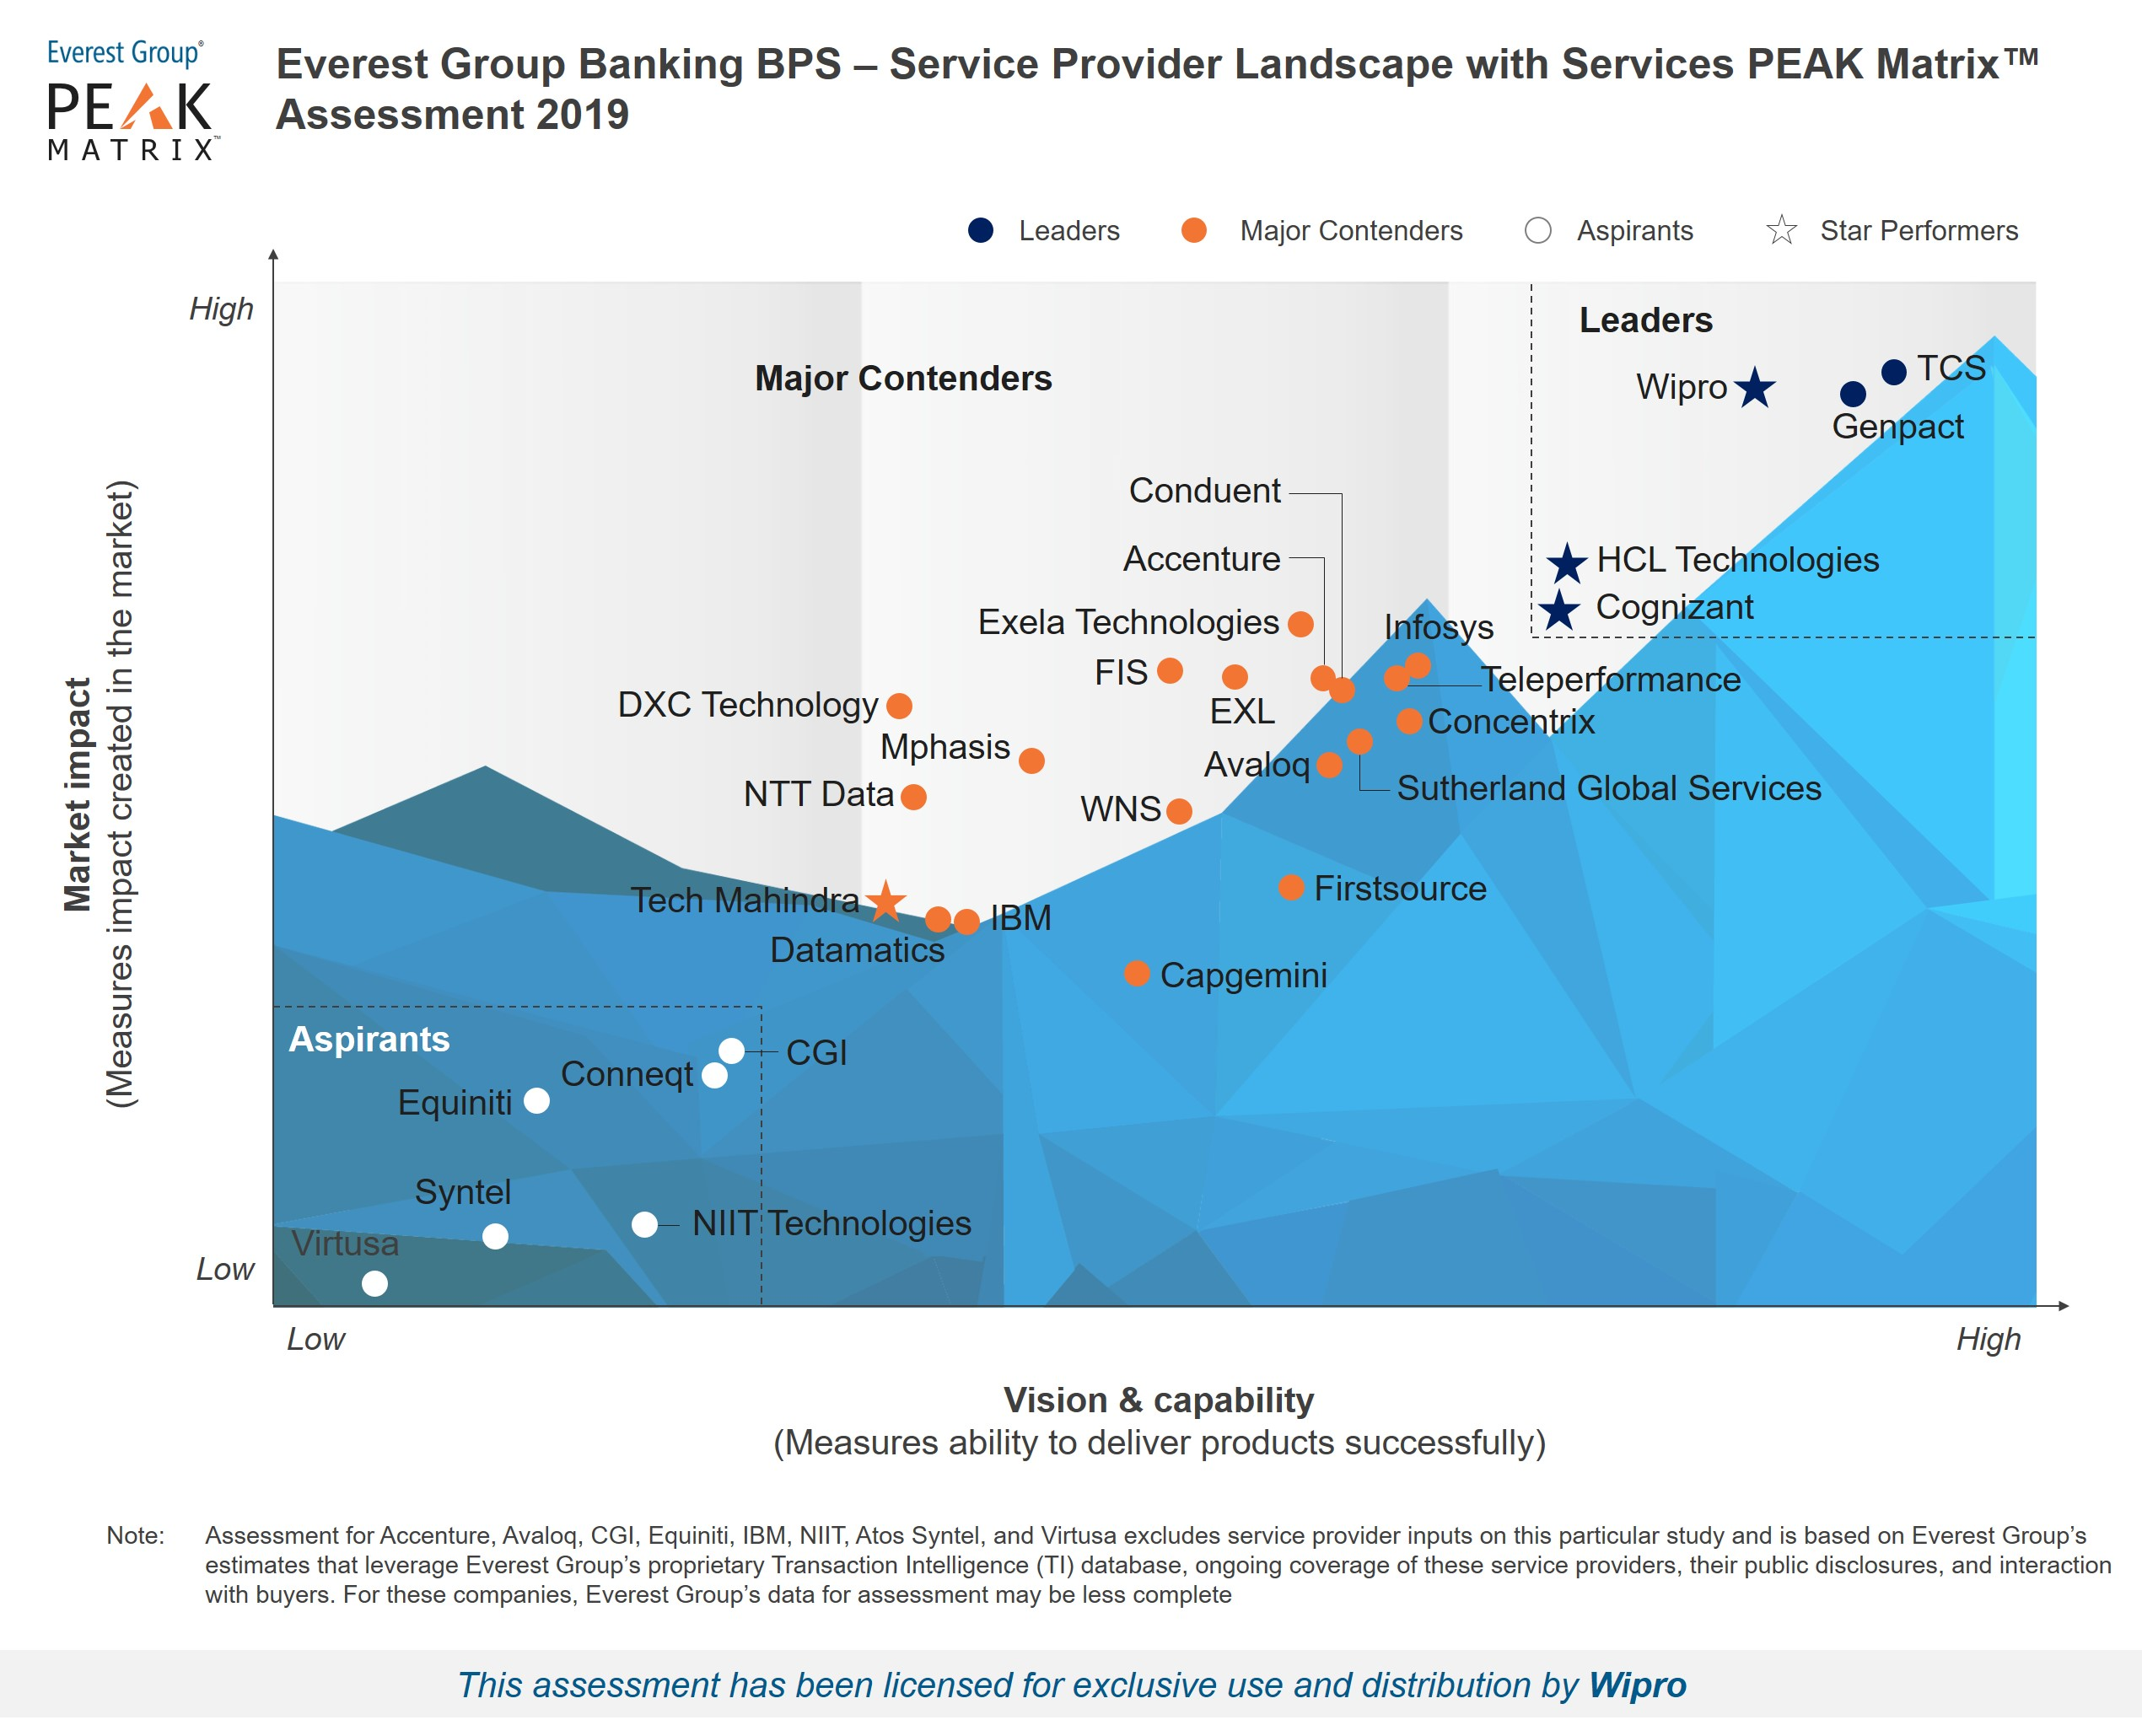 Wipro recognized as a Leader in Everest Group's Banking BPS – Service Provider Landscape with Services PEAK Matrix Assessment 2019